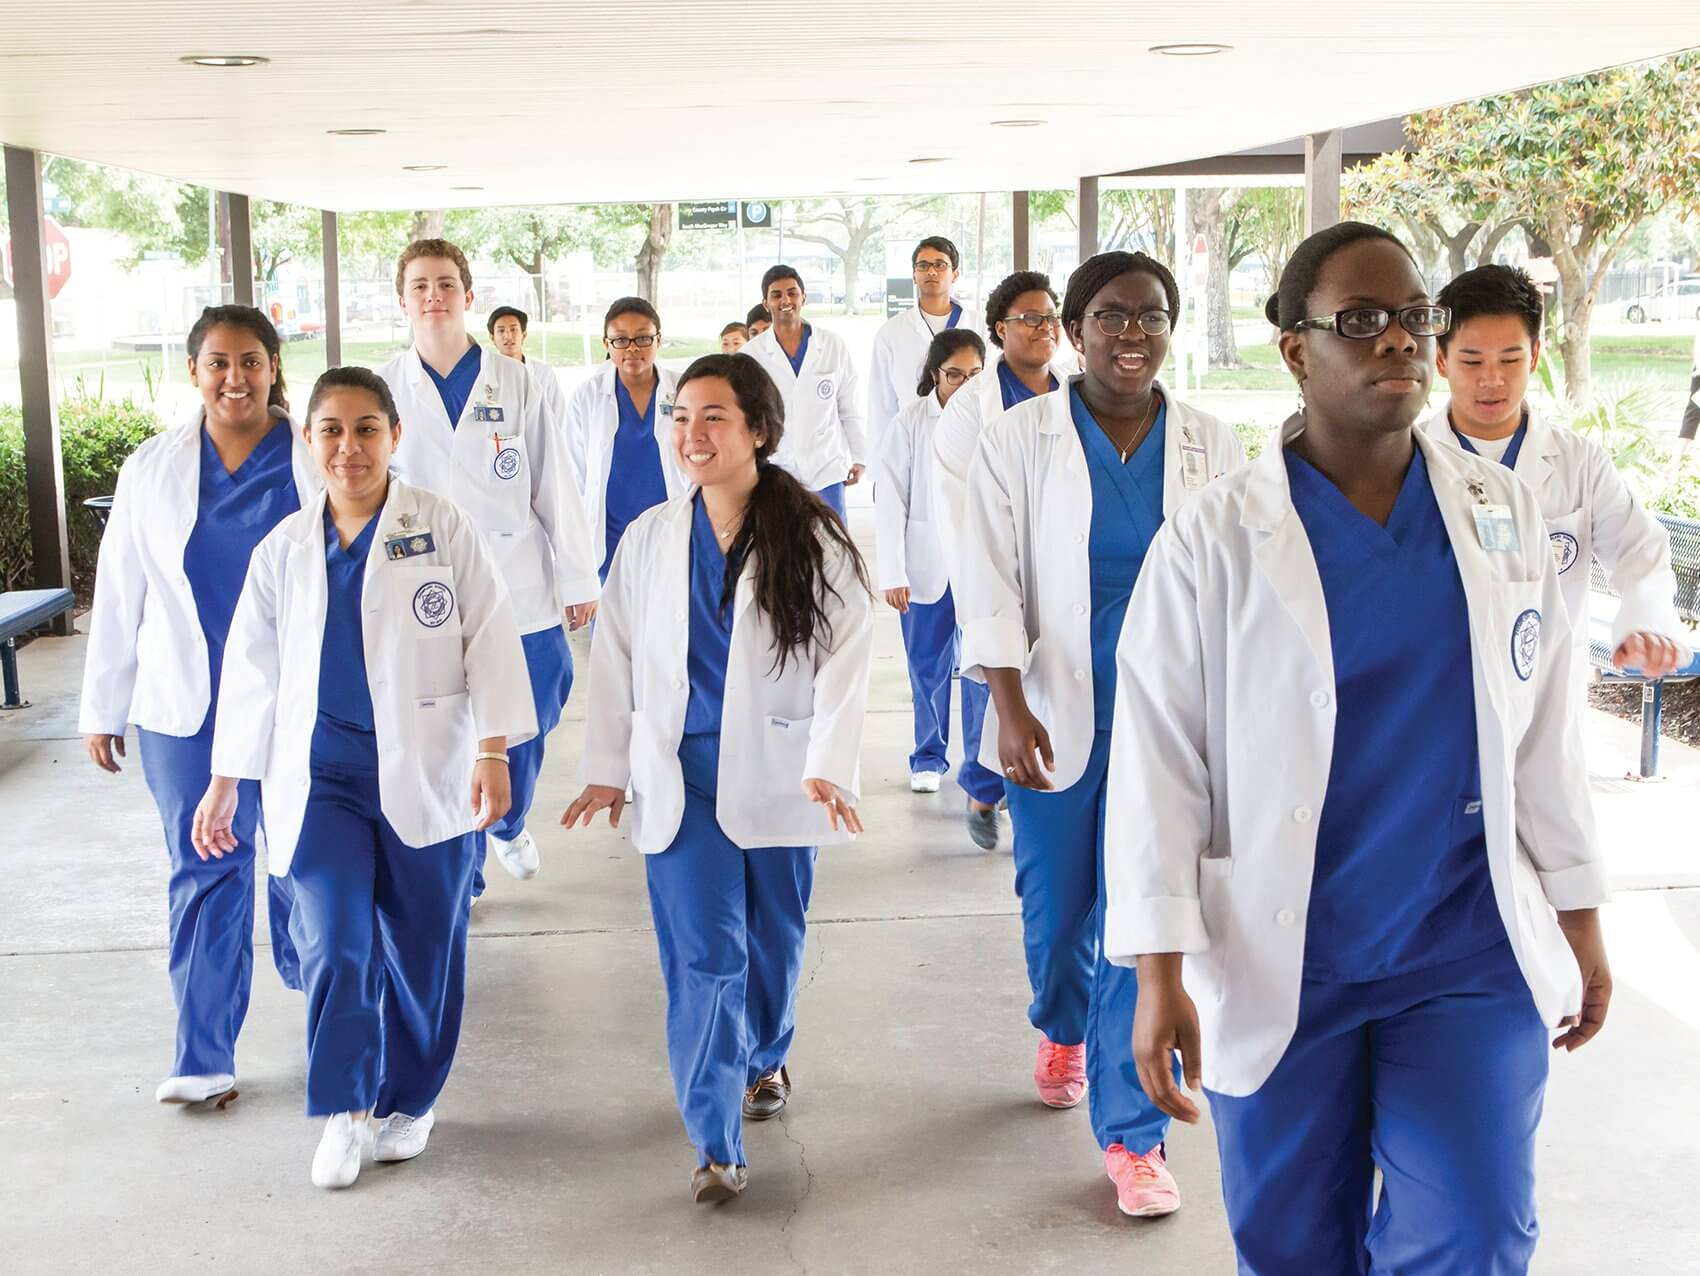 Students in scrubs return from a trip to the Texas Medical Center. During their junior and senior years, DeBakey students spend time in the medical center, shadowing medical and health science professionals.